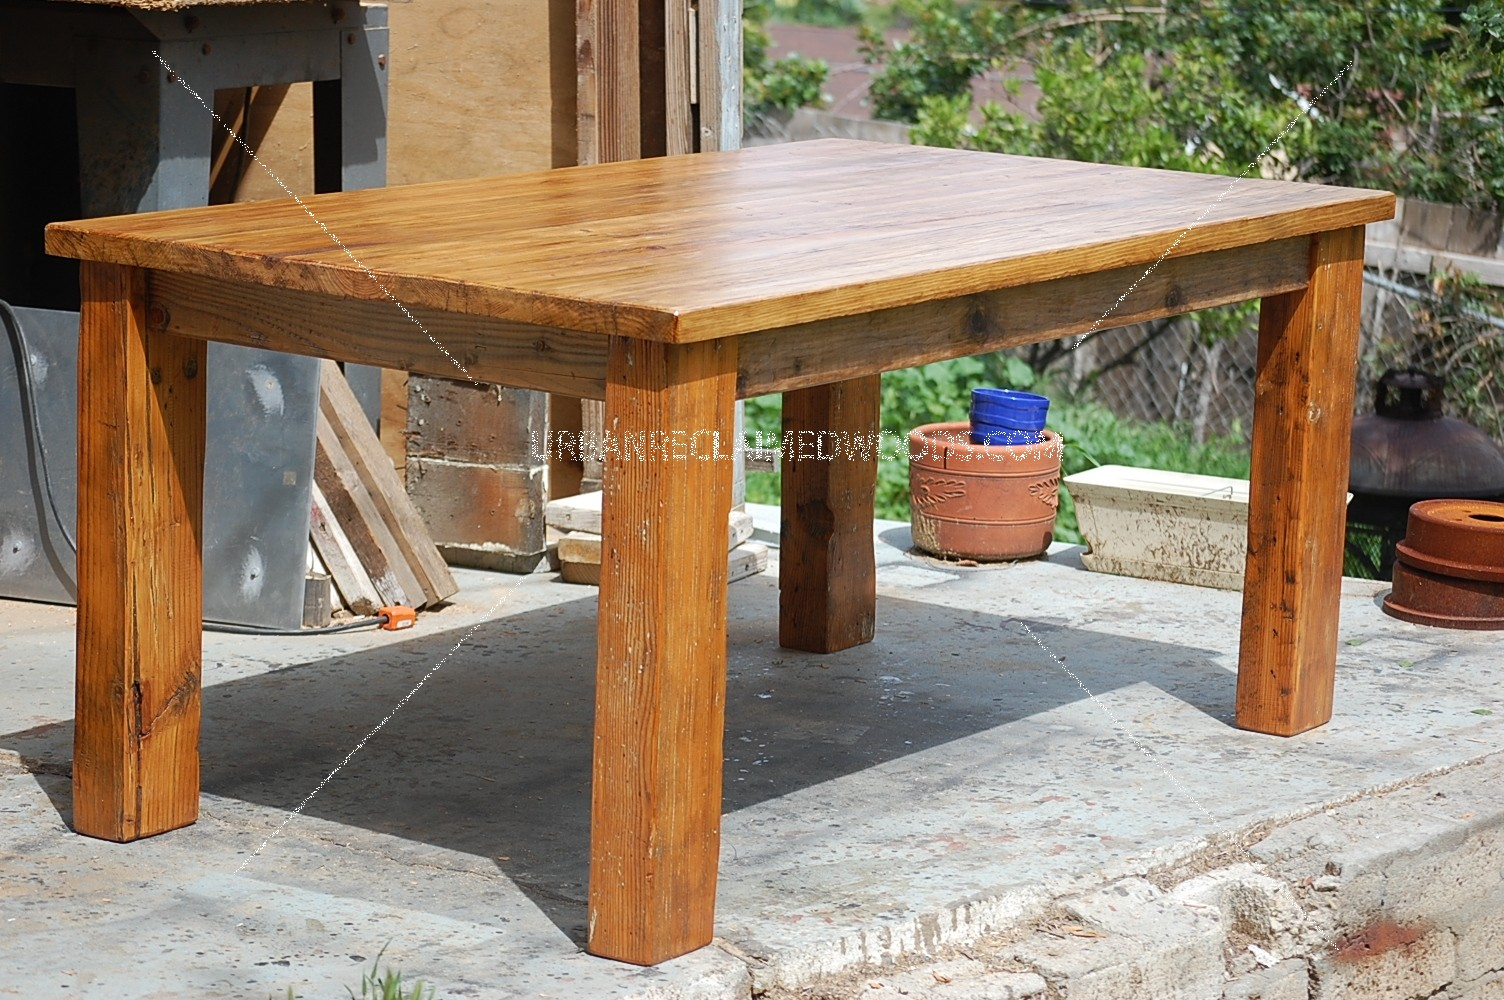 "Dining table -Rustic, handcrafted 100% reclaimed wood- 66"" x 38"" 30"" tall"